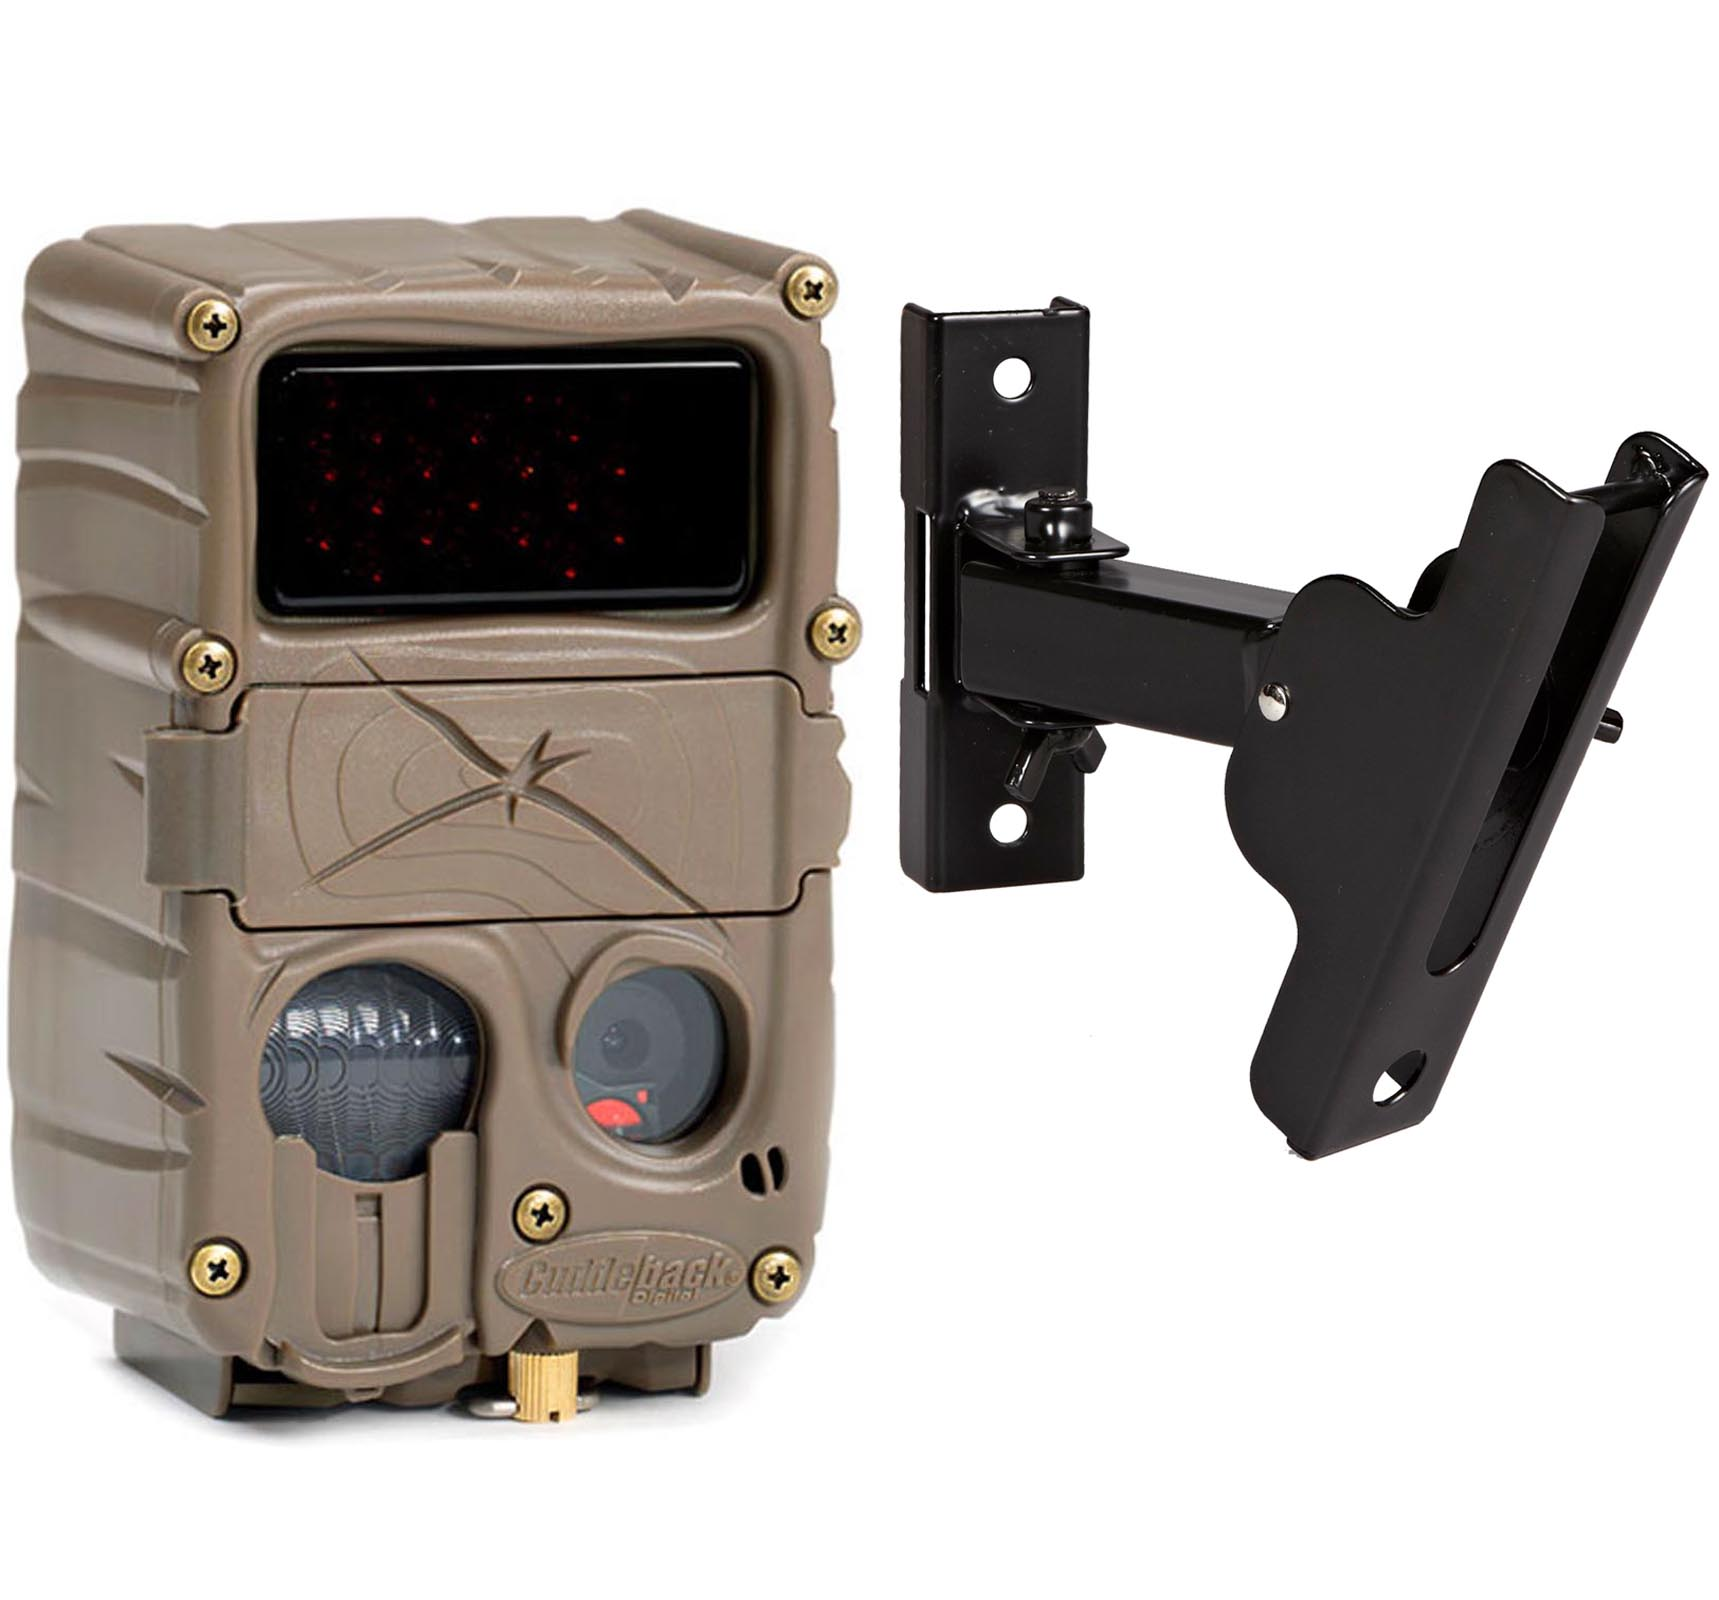 Cuddeback 20MP E3 Black Flash No Glow IR Trail Game Camera + Genius PTL Mount by Cuddeback